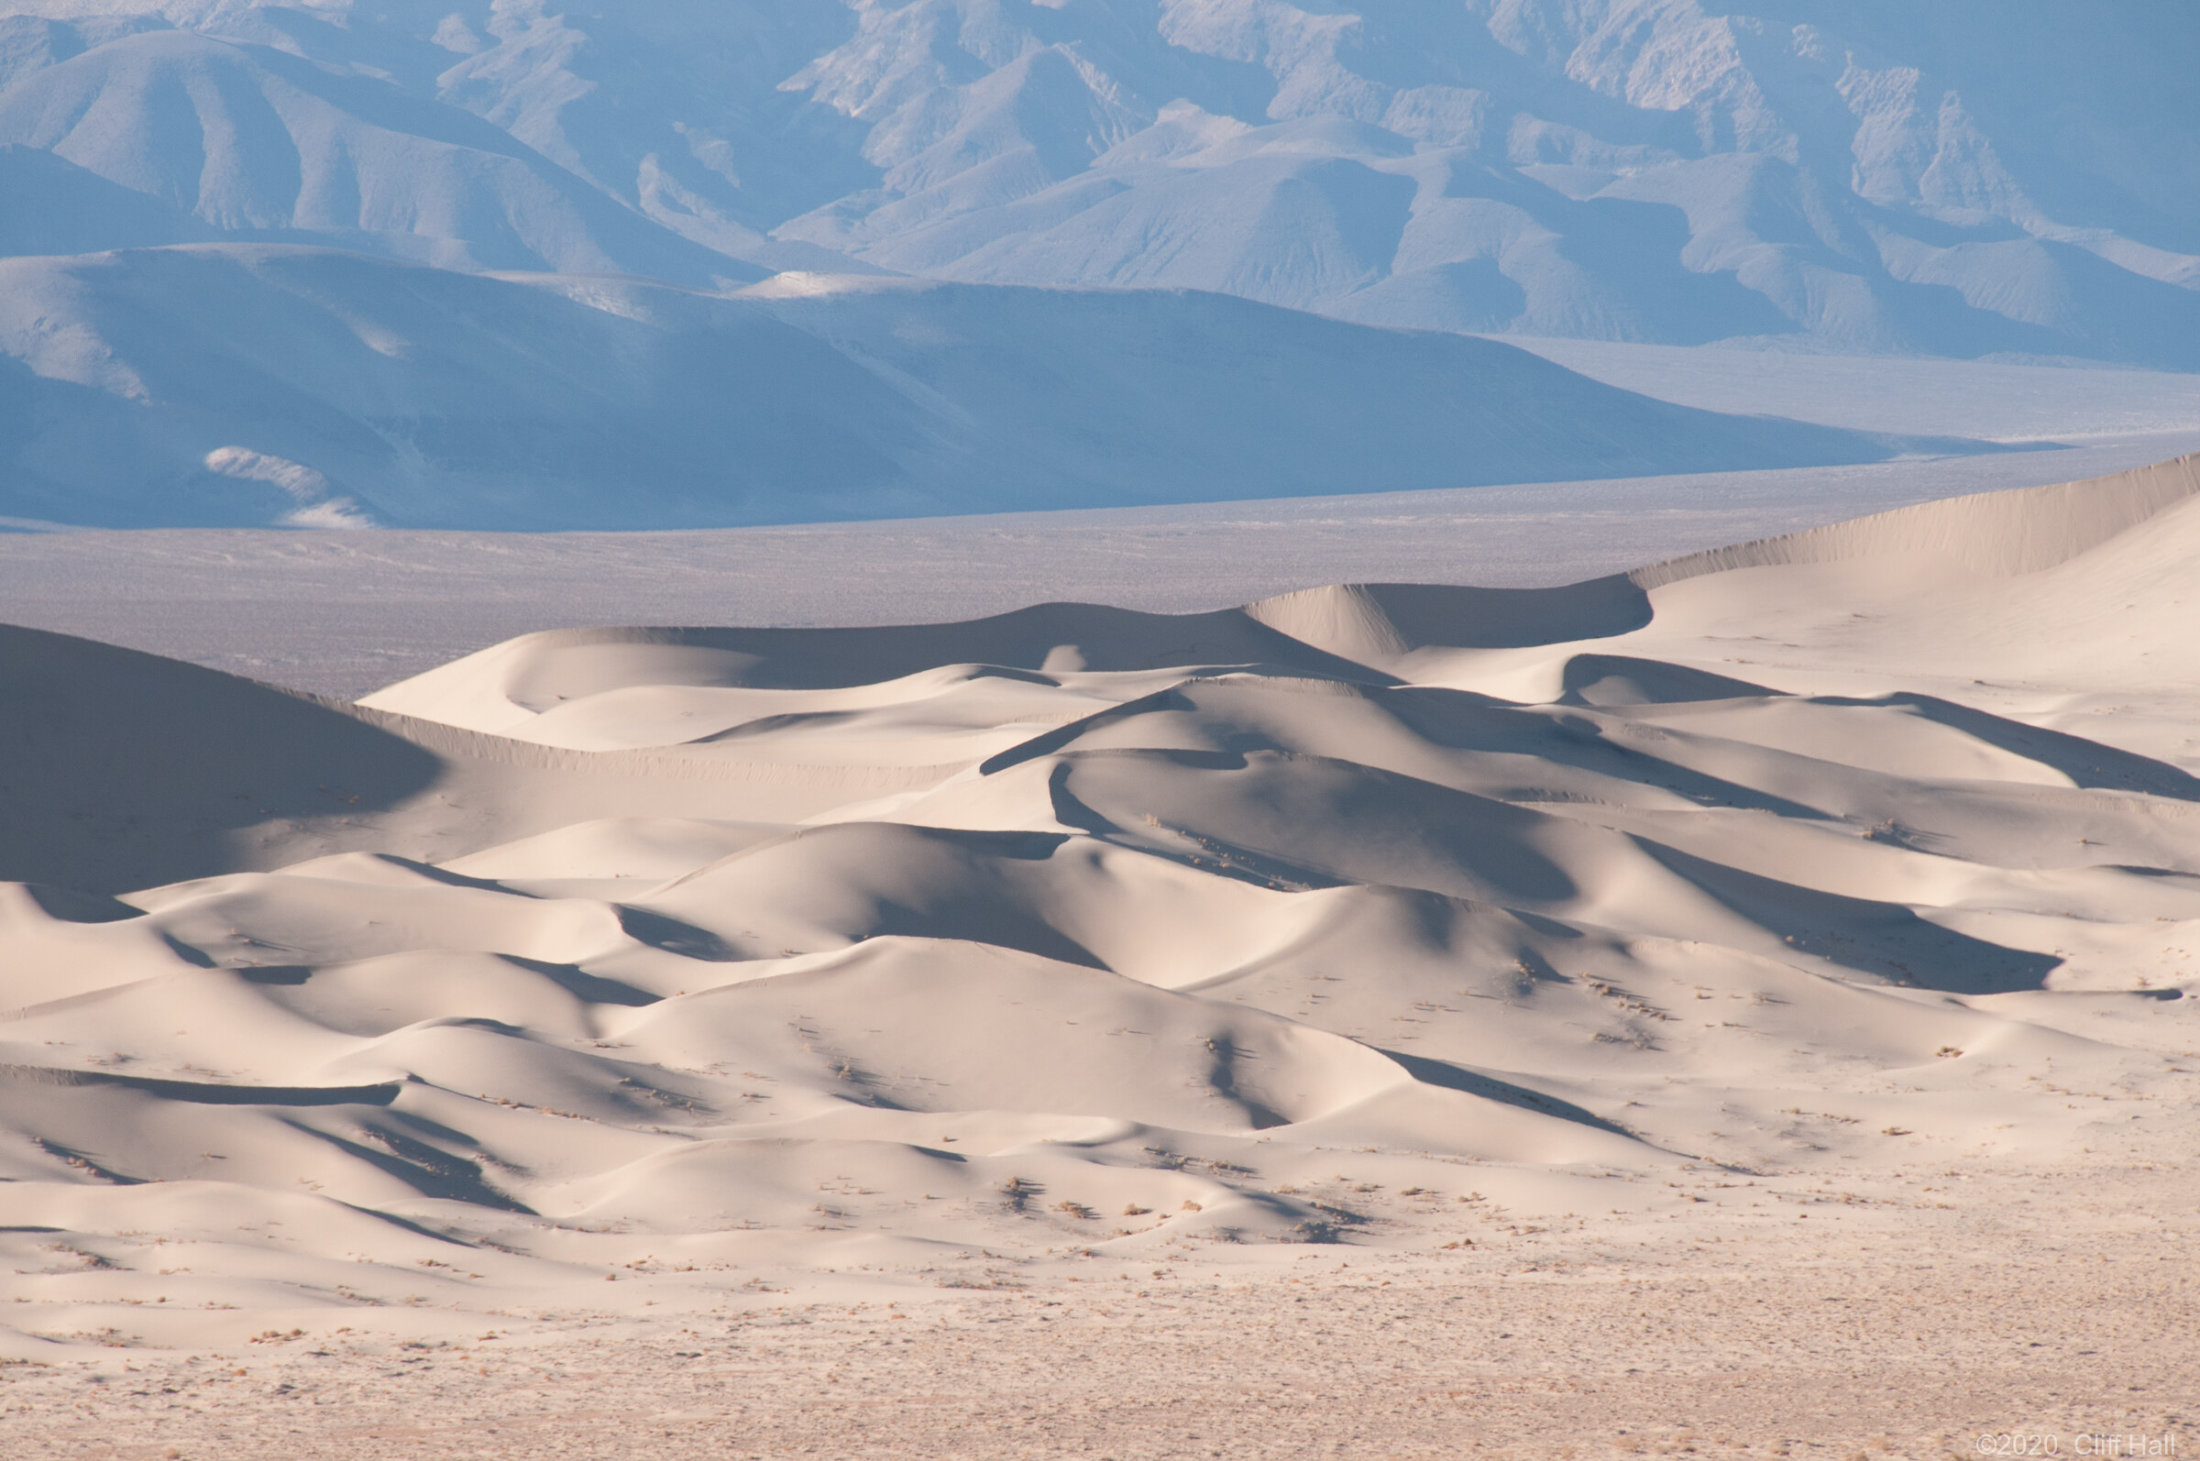 Eureka Dunes has some of the tallest dunes in the US